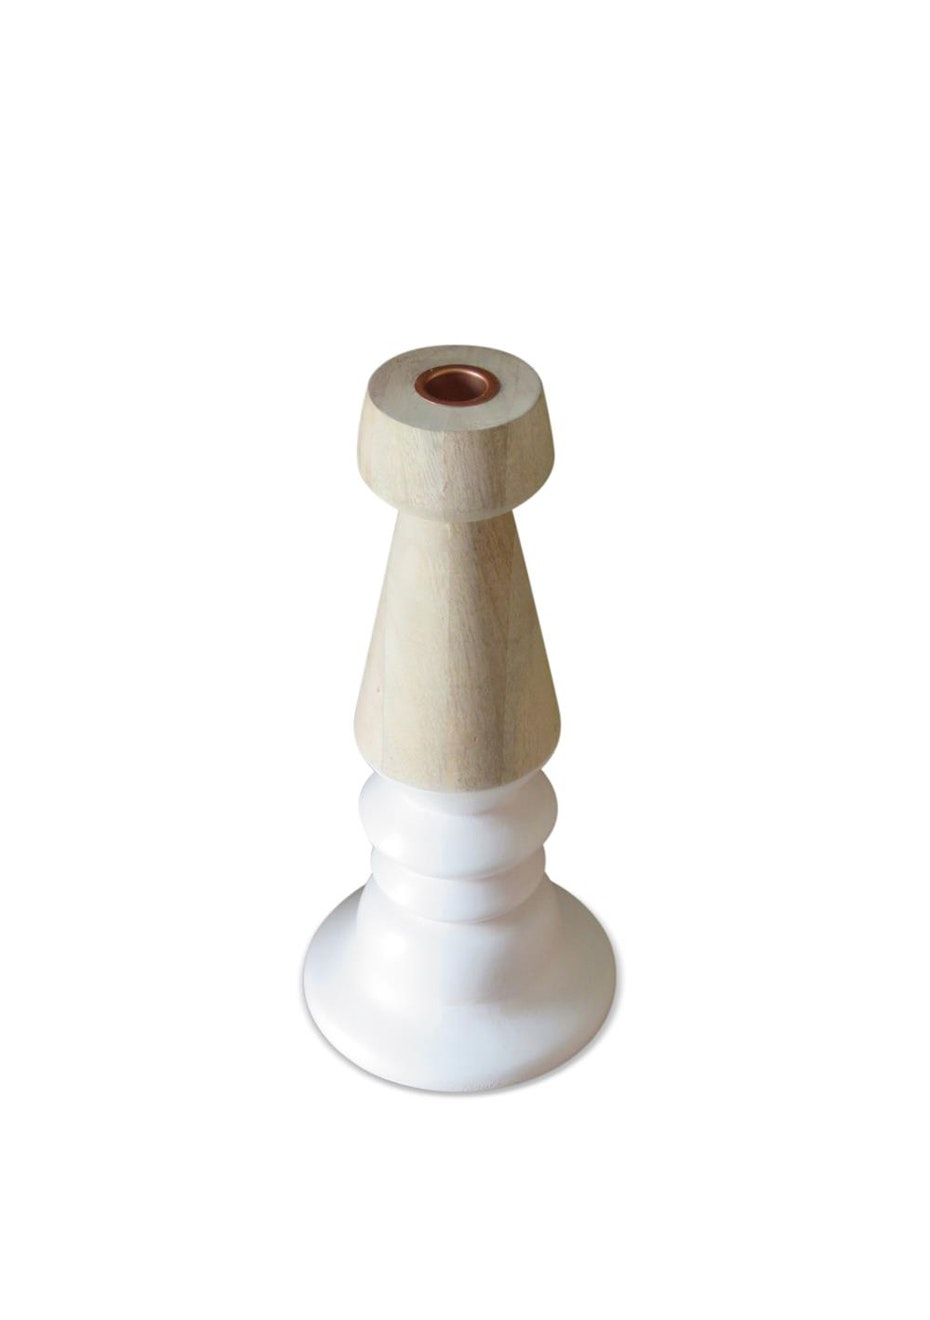 Me & My Trend - Medium White & Wood turned candle stick